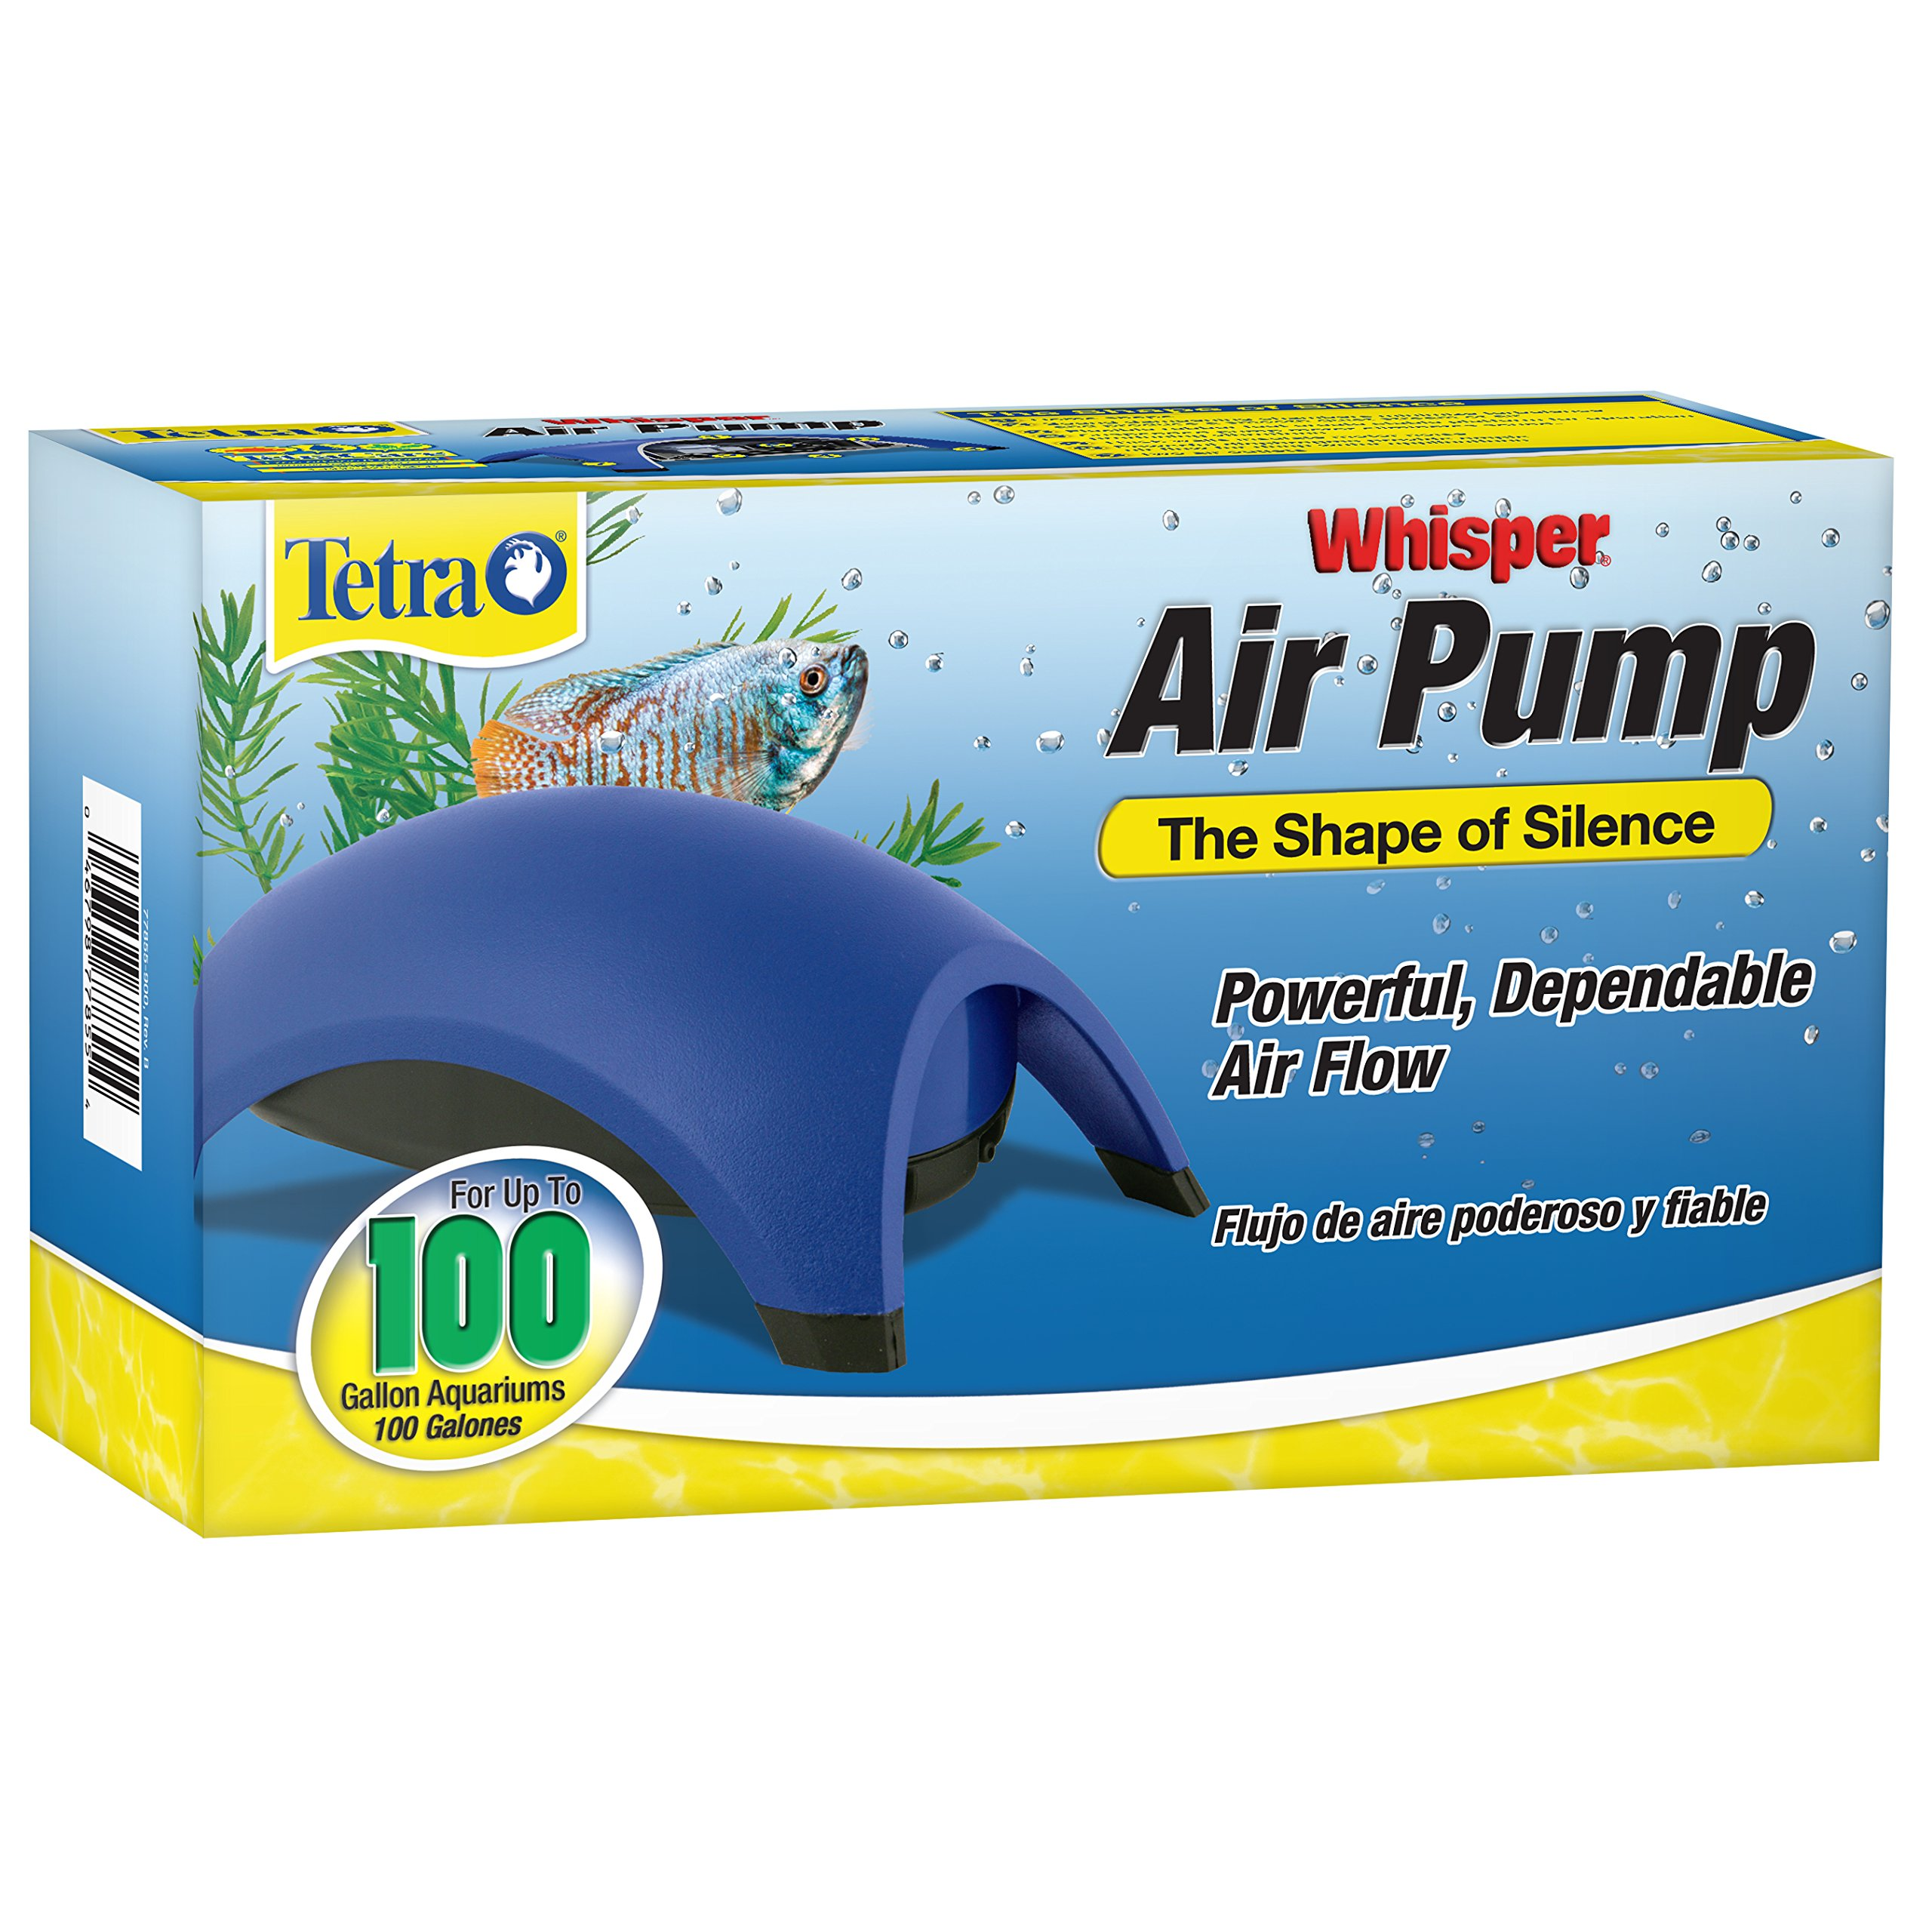 Tetra Whisper Easy to Use Air Pump for Aquariums (Non-UL) by Tetra (Image #1)